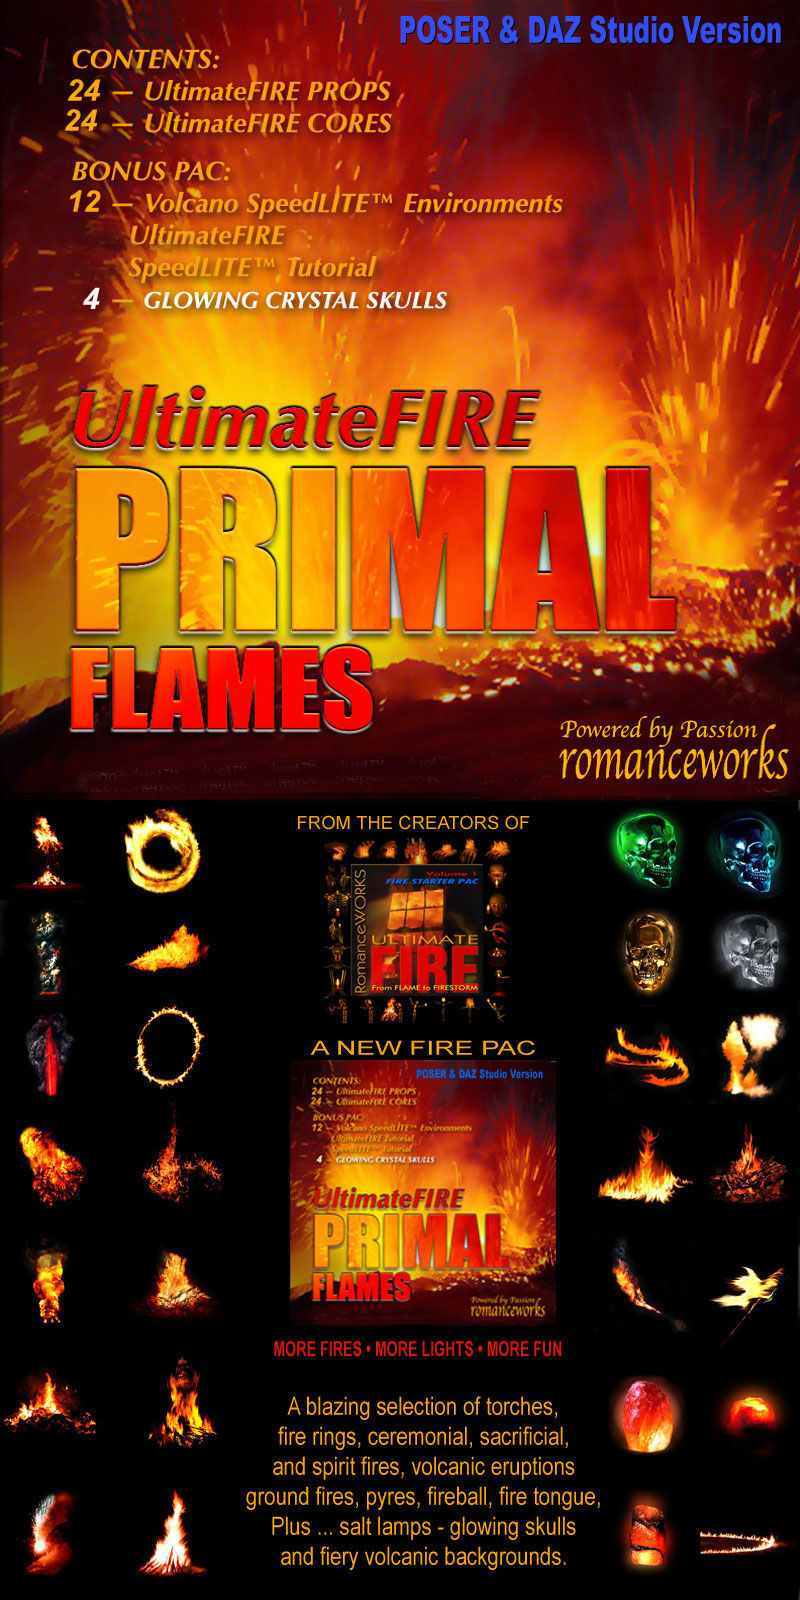 UltimateFIRE_PrimalFLAMES